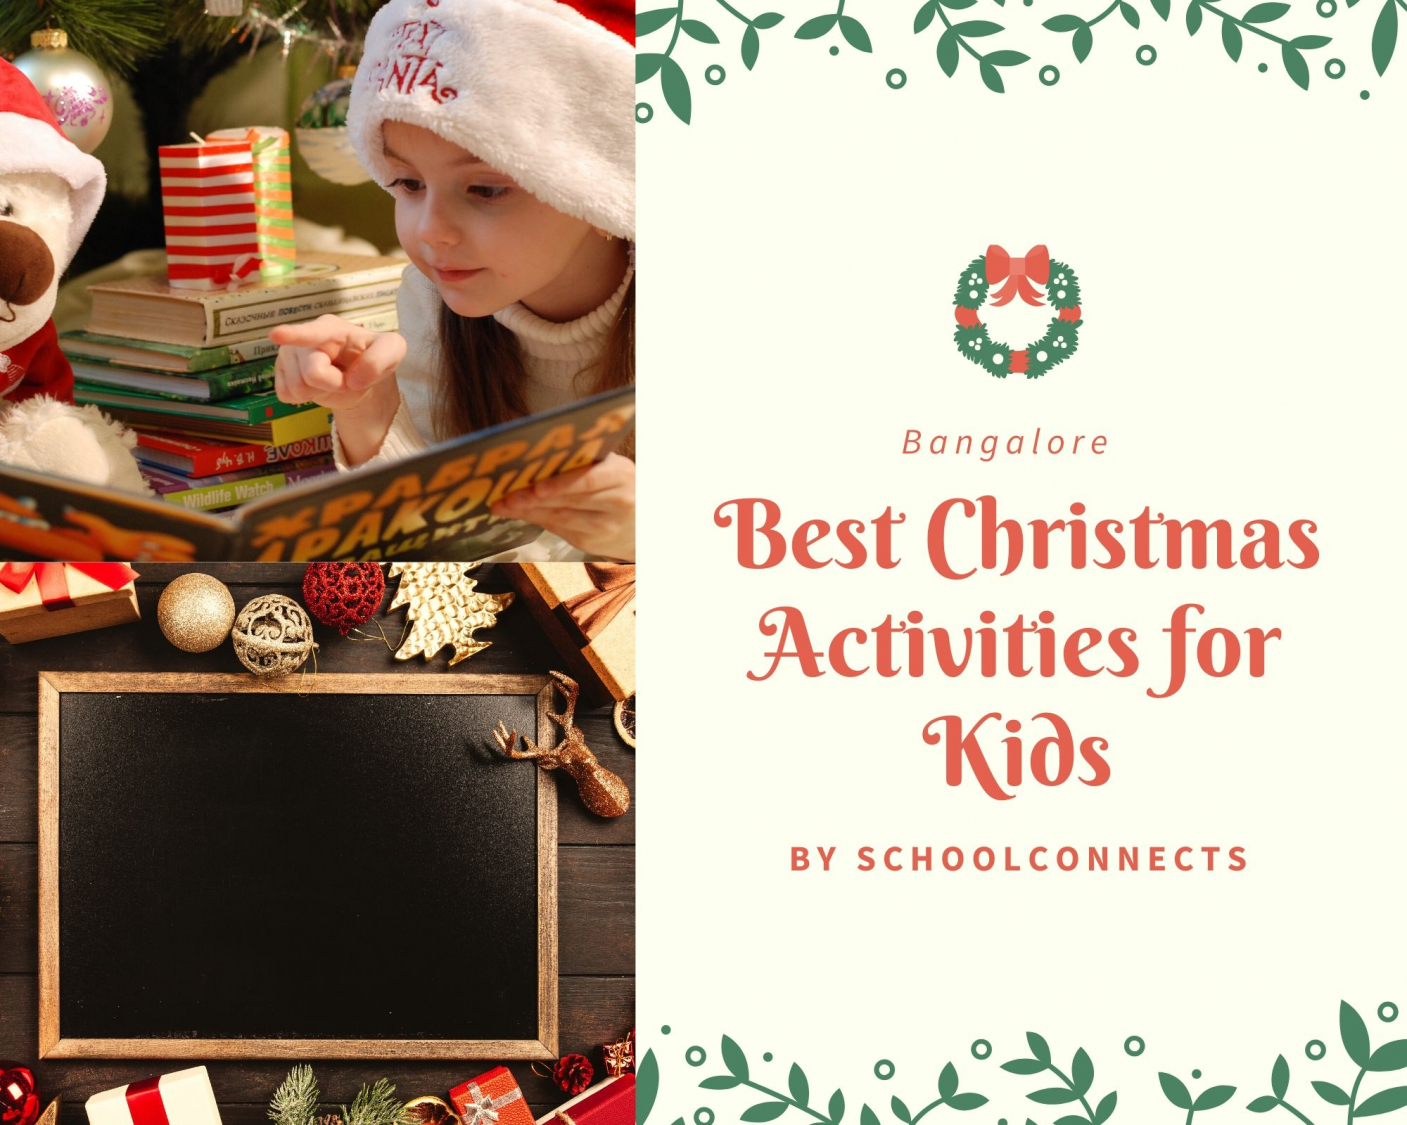 Christmas Activities for Kids in Bangalore